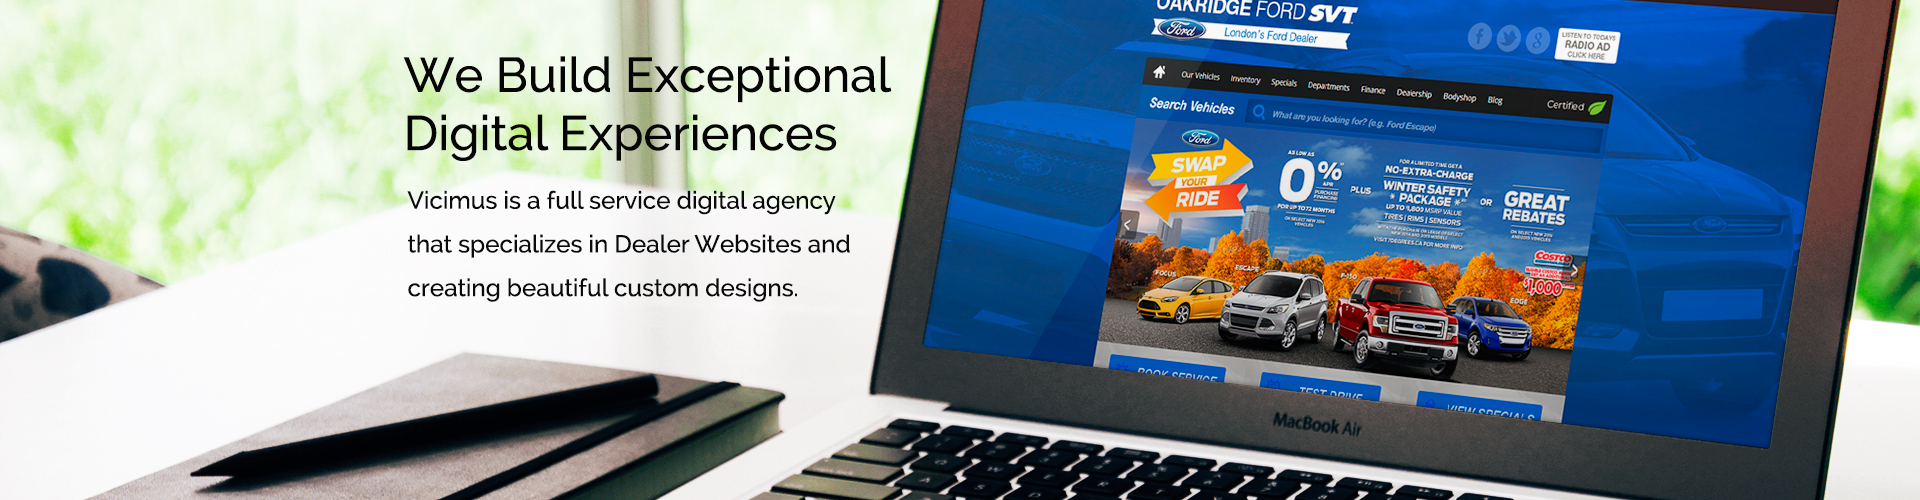 We Build Exceptional Digital Experiences